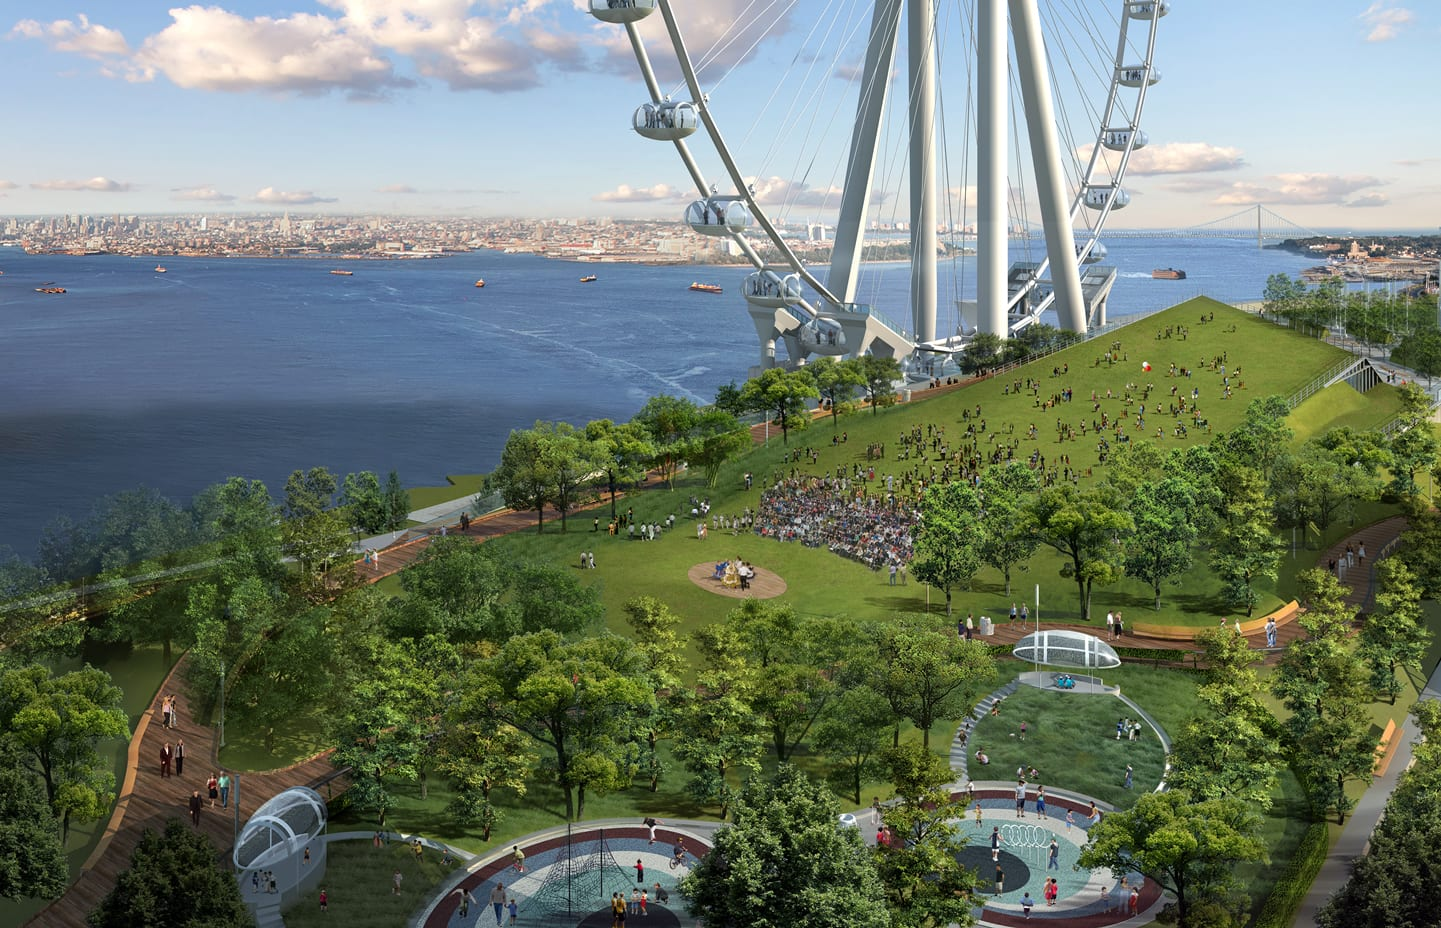 New York Wheel - Looking at Green Roof